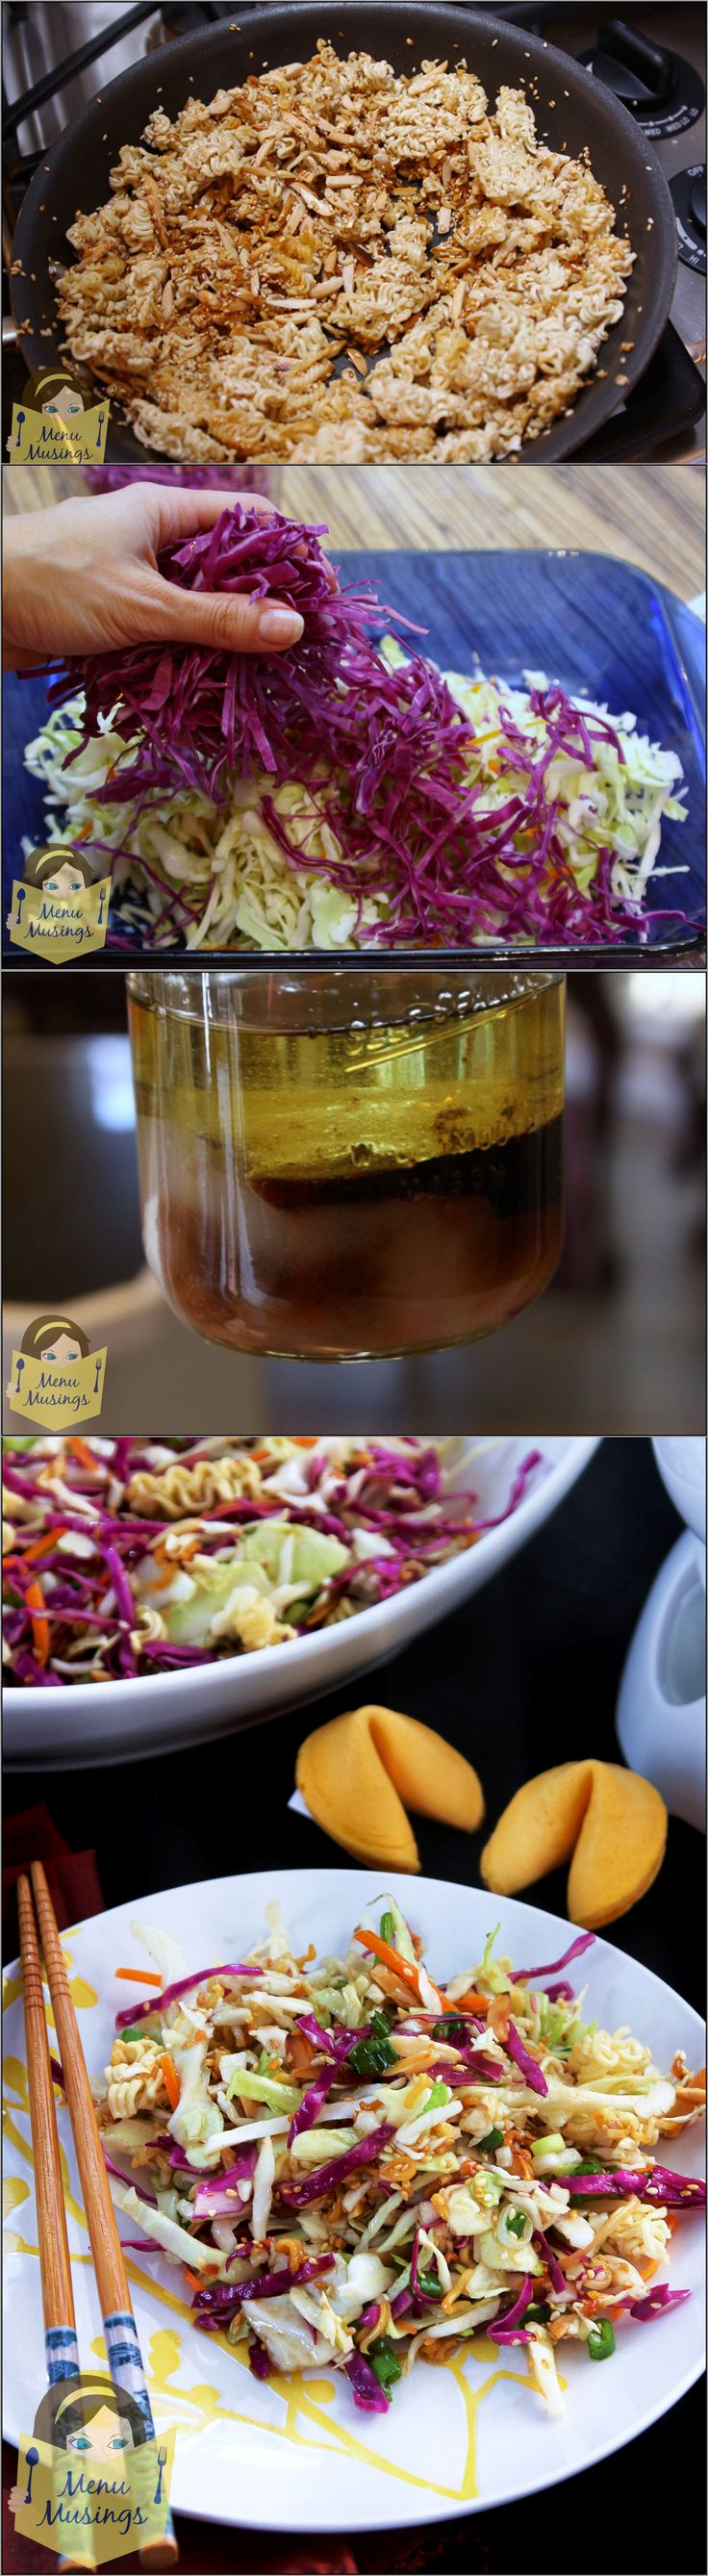 Oriental Cole Slaw - fast, fresh, crunchy, and totally addictive! Perfect for gatherings and pot lucks!  Step-by-step photos.  <3  <3